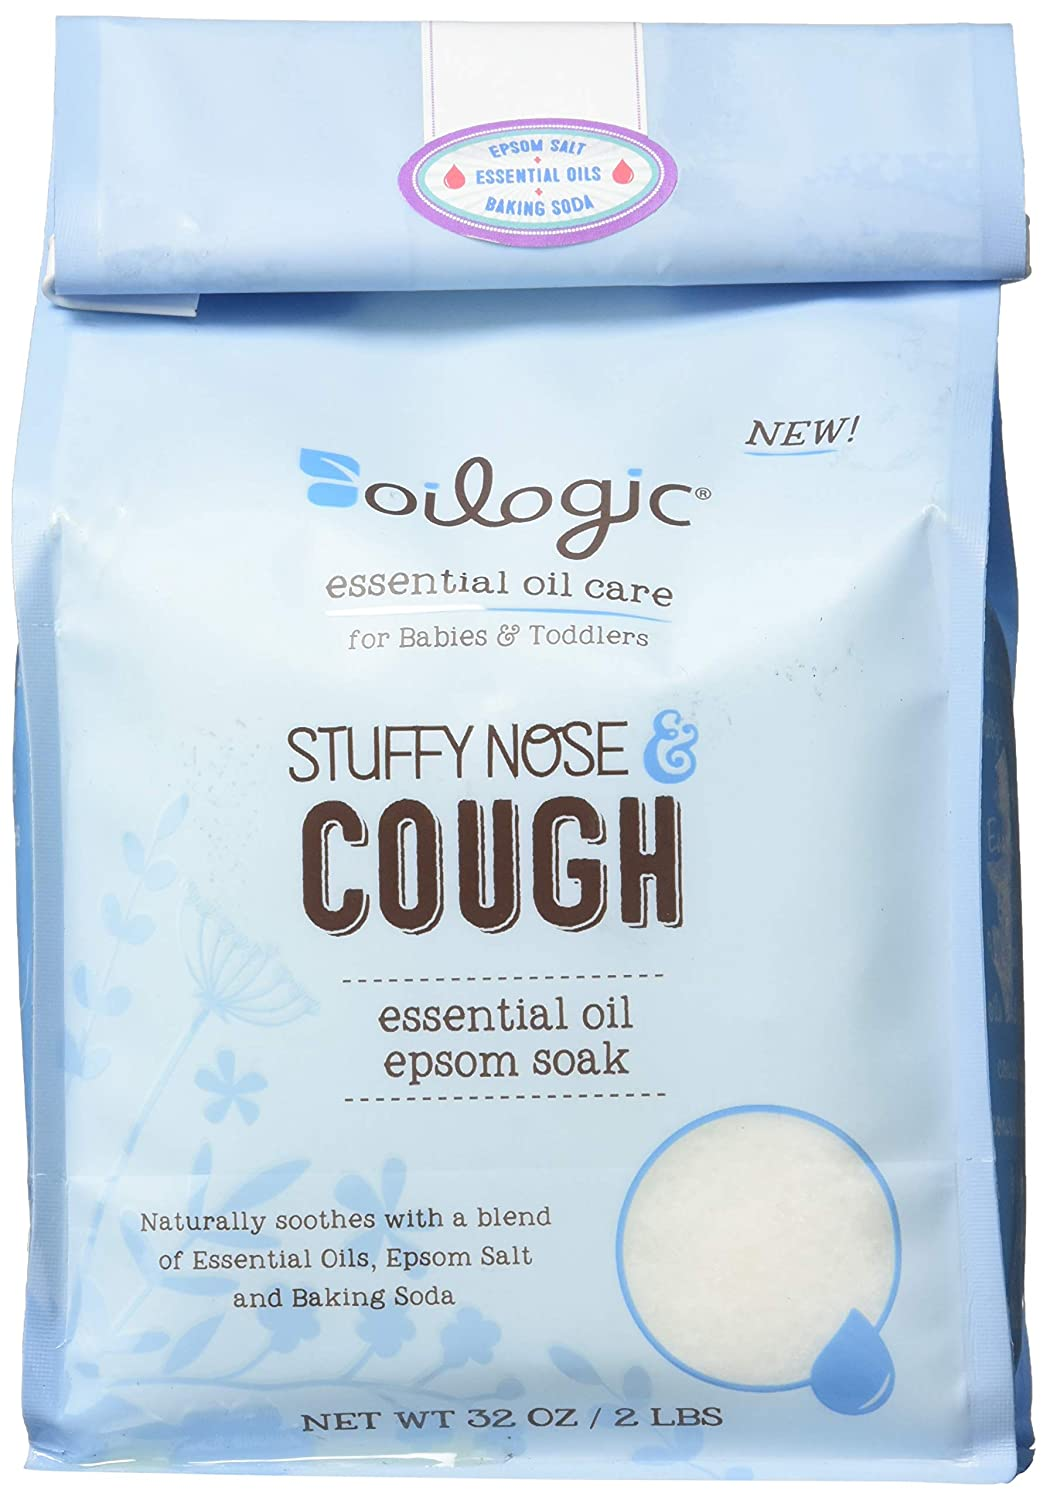 Stuffy Nose & Cough Essential Oil Epsom Soak